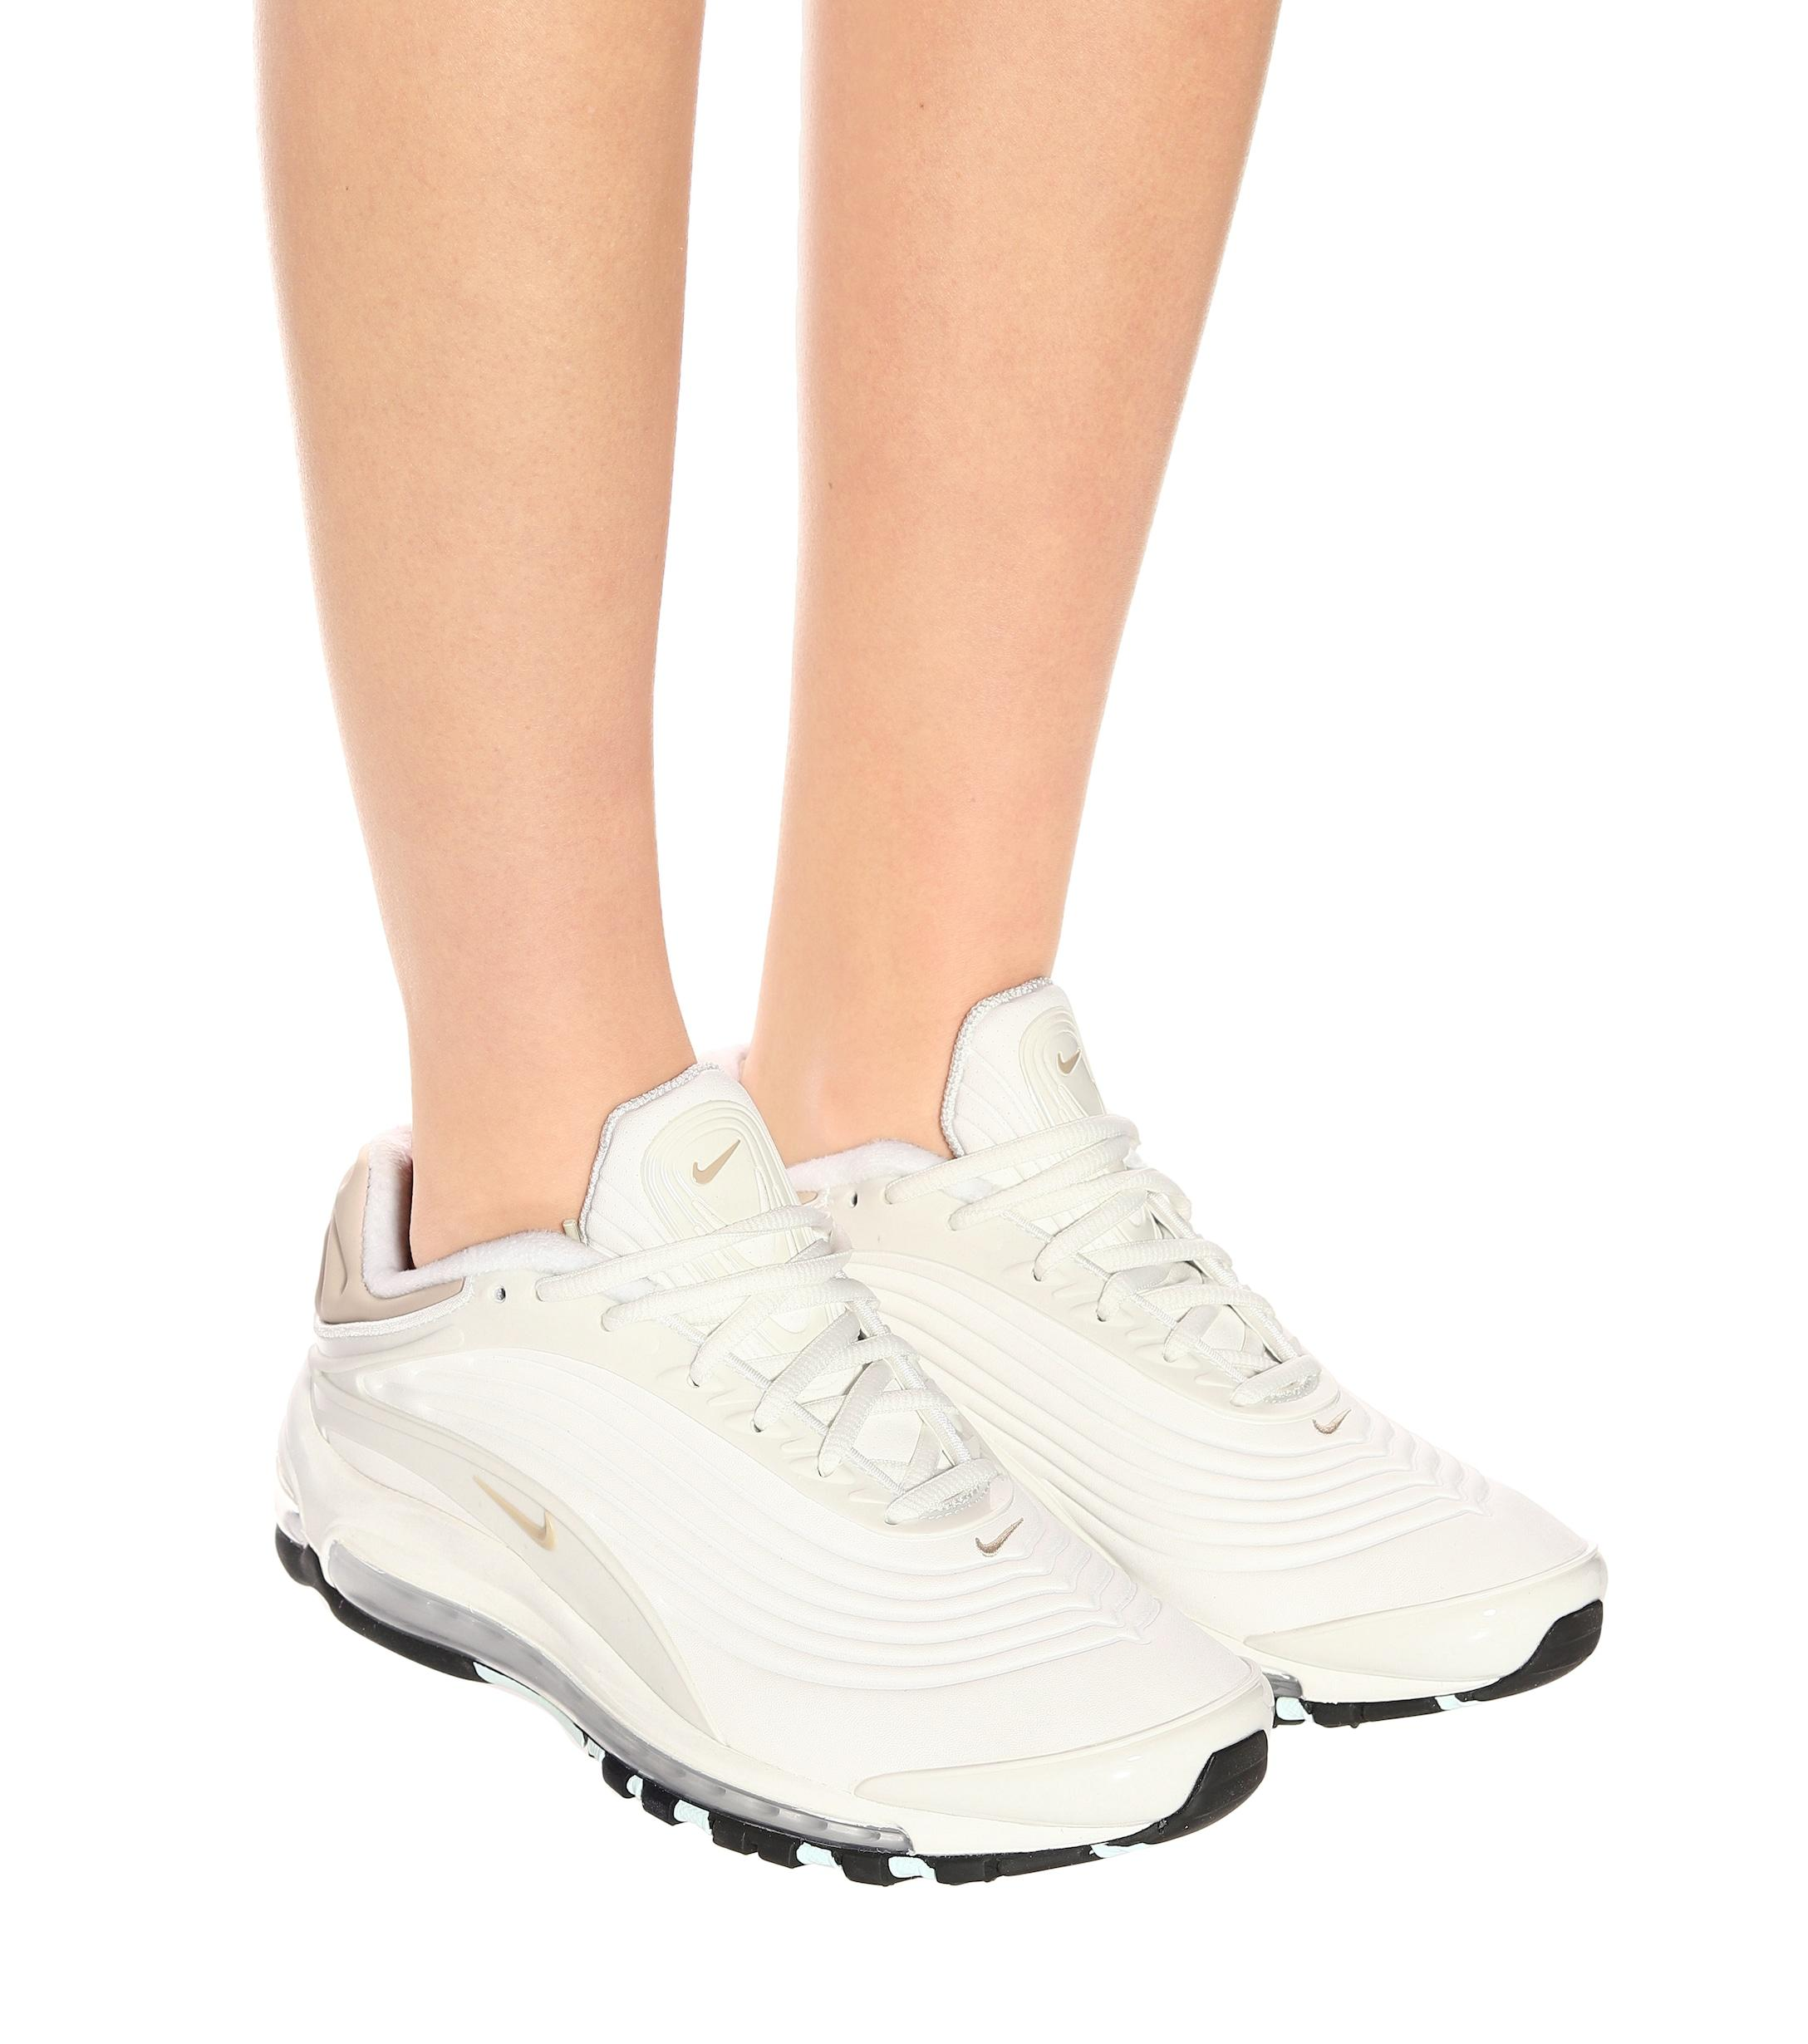 Zapatillas Air Max Deluxe Nike de color Blanco